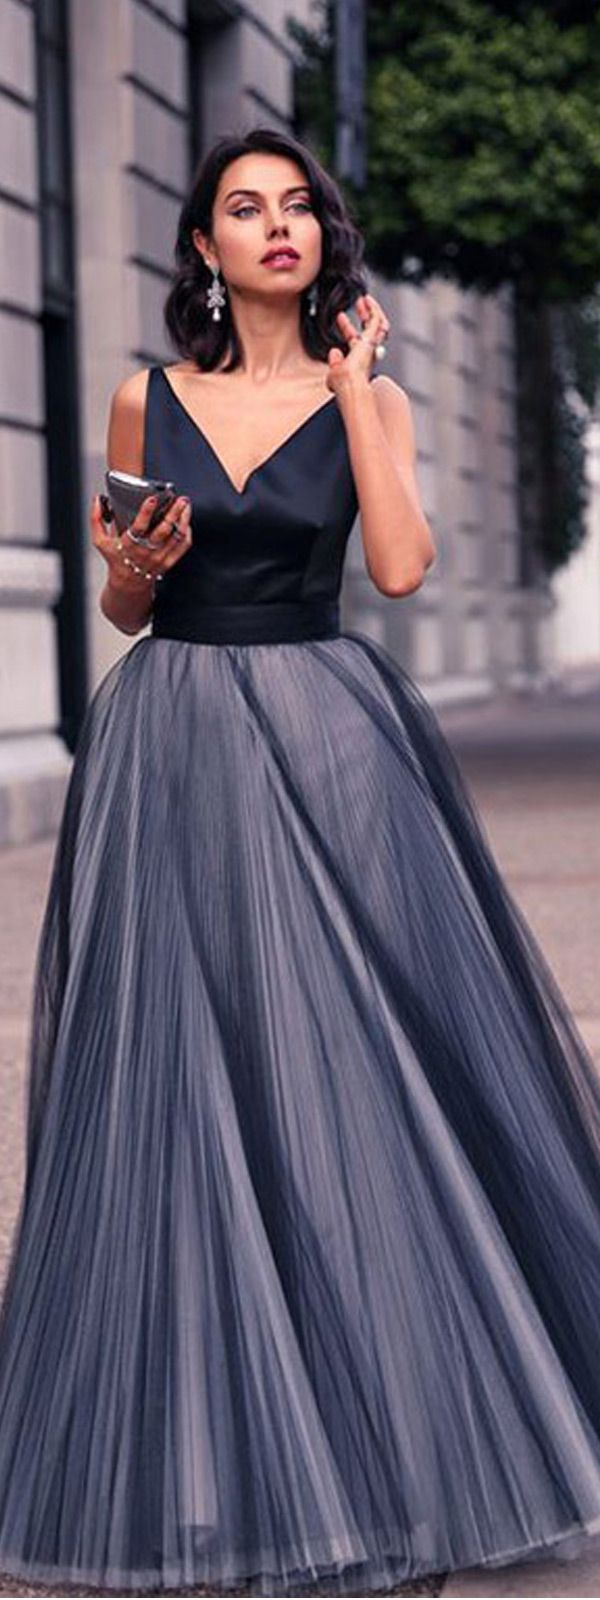 Charming Satin & Tulle V-Neck Neckline Ball Gown Evening Dresses With Bowknot